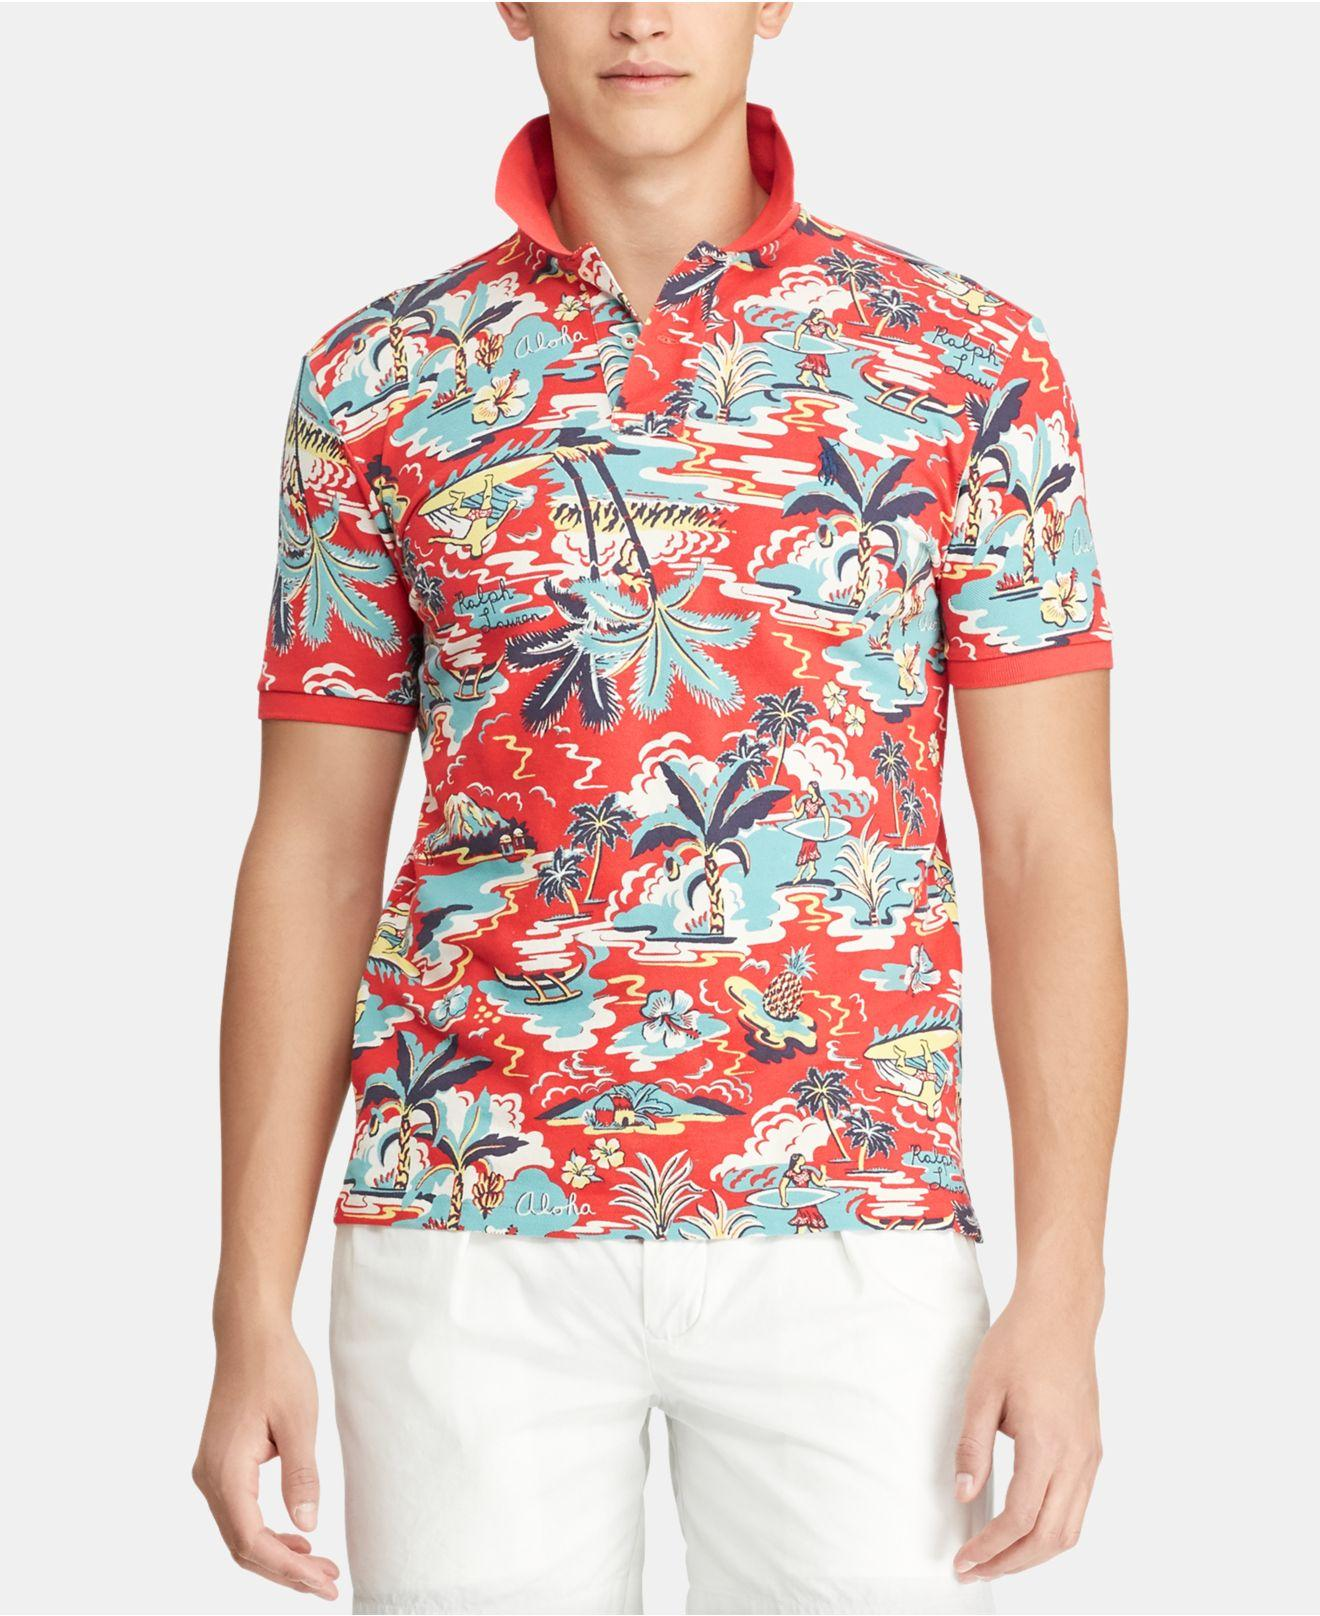 af0cac00 Polo Ralph Lauren Classic-fit Mesh Hawaiian Polo Shirt in Red for ...